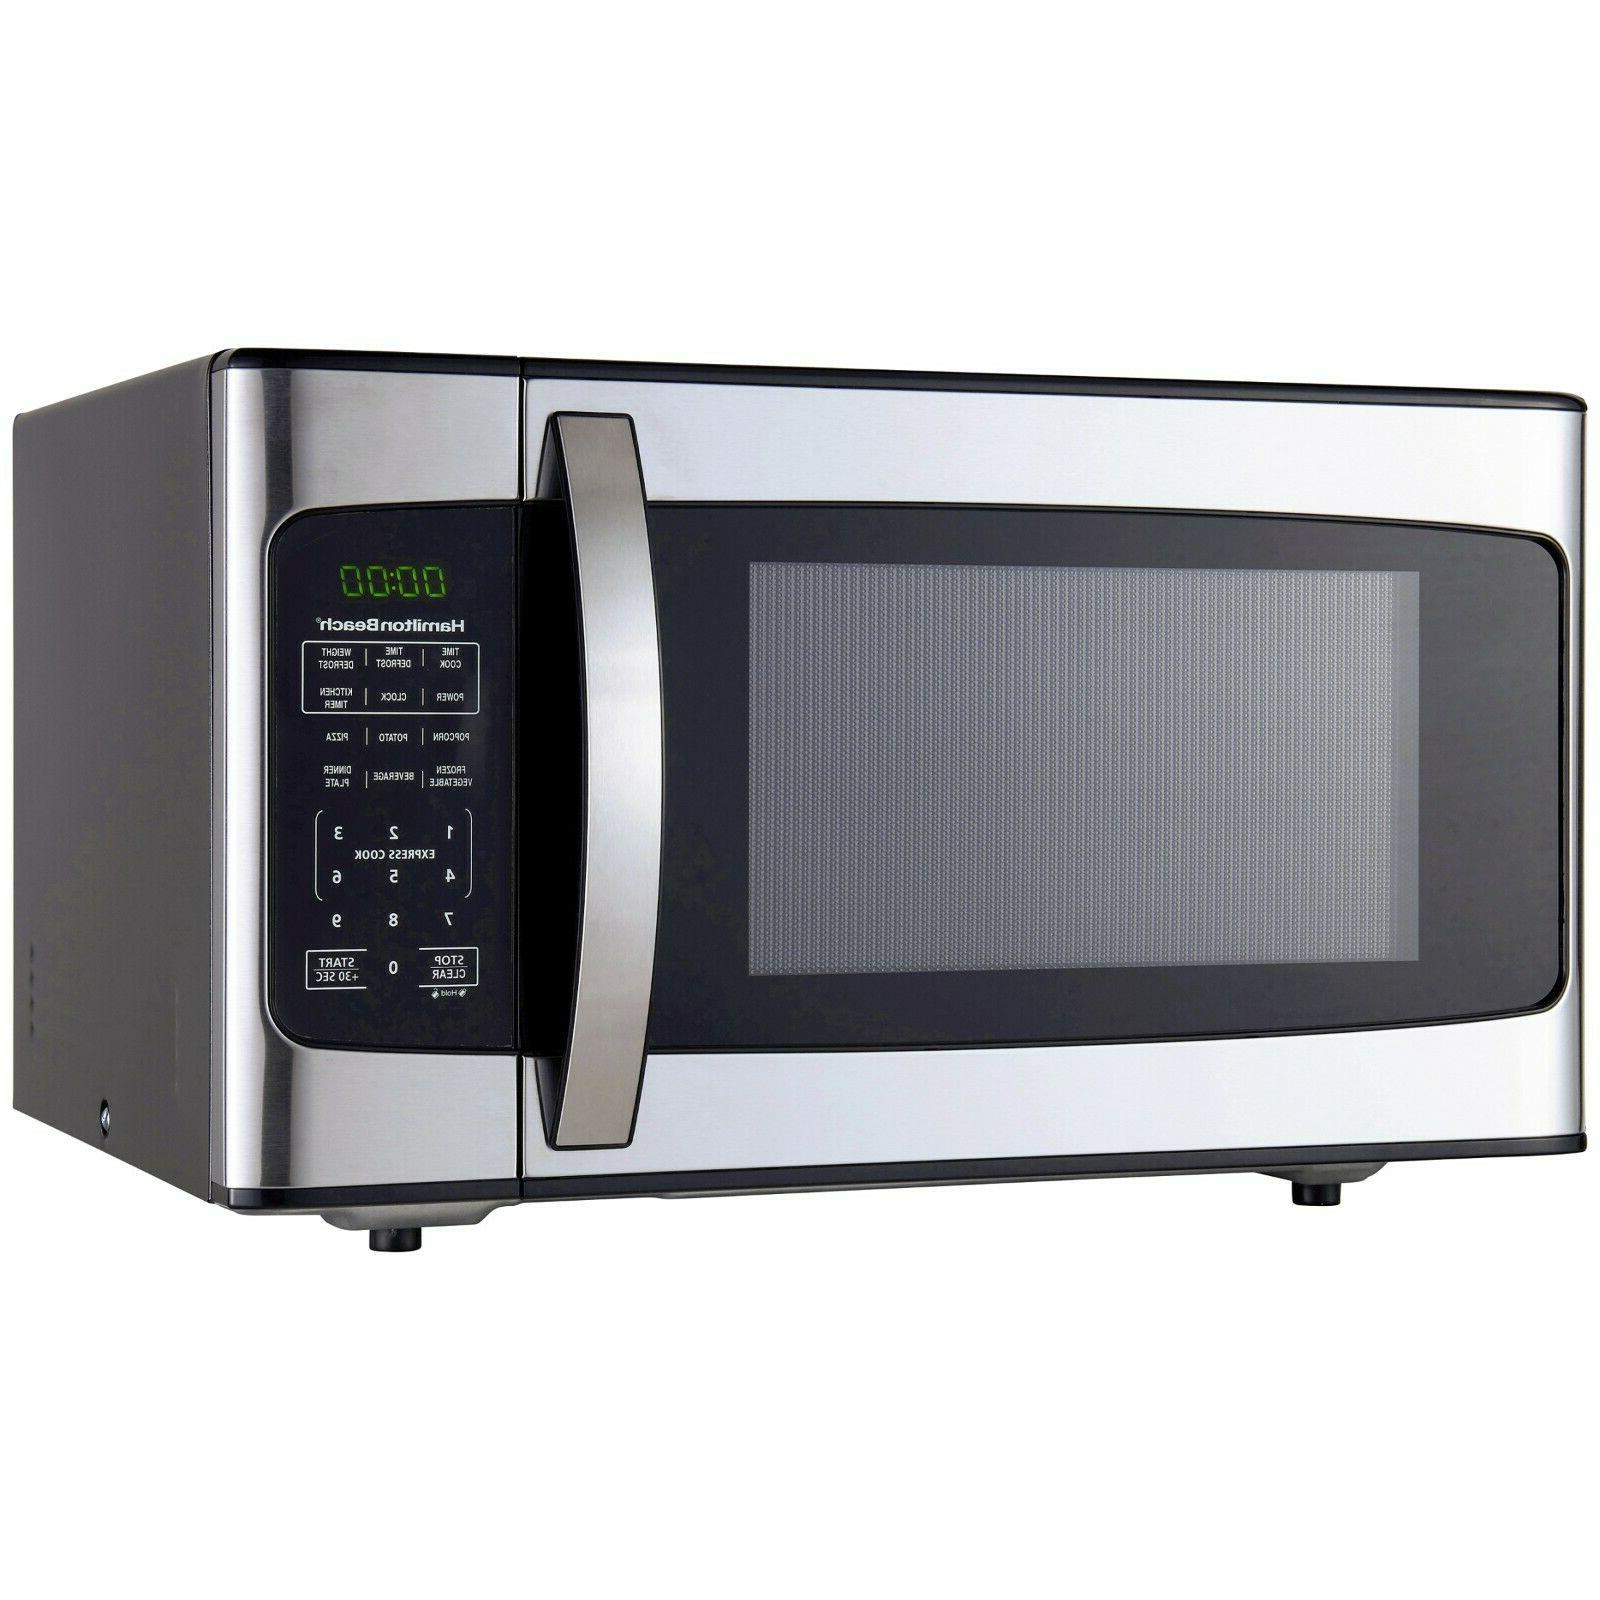 1.1 Cu Ft 1000W Stainless Steel Microwave Oven Countertop Po